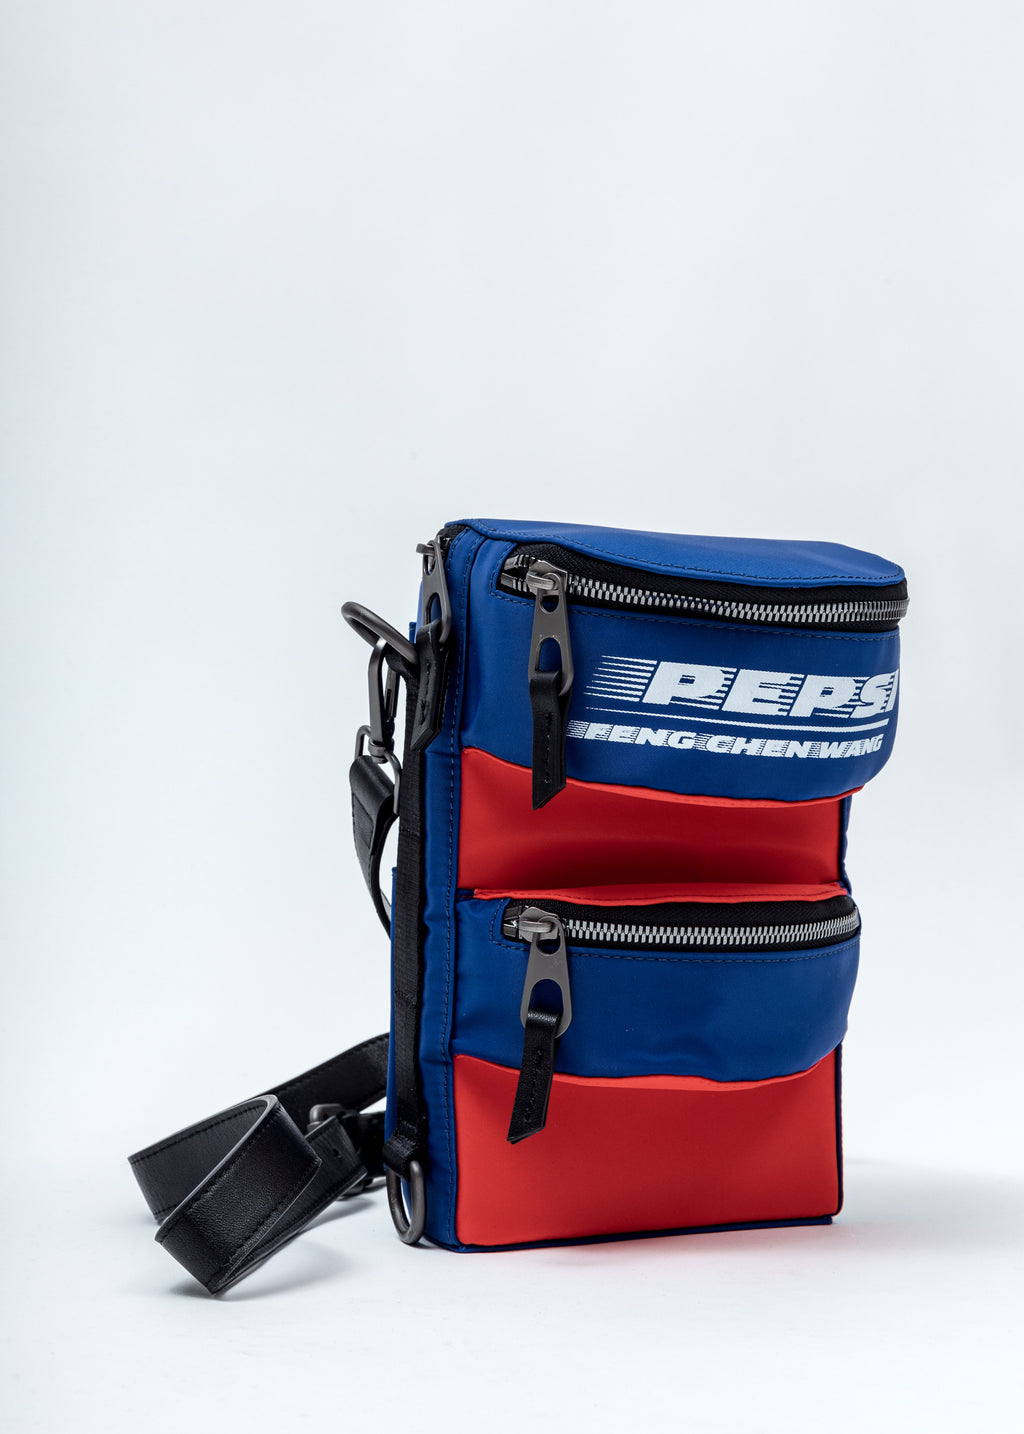 Blue & Red Pepsi 3D F Bag